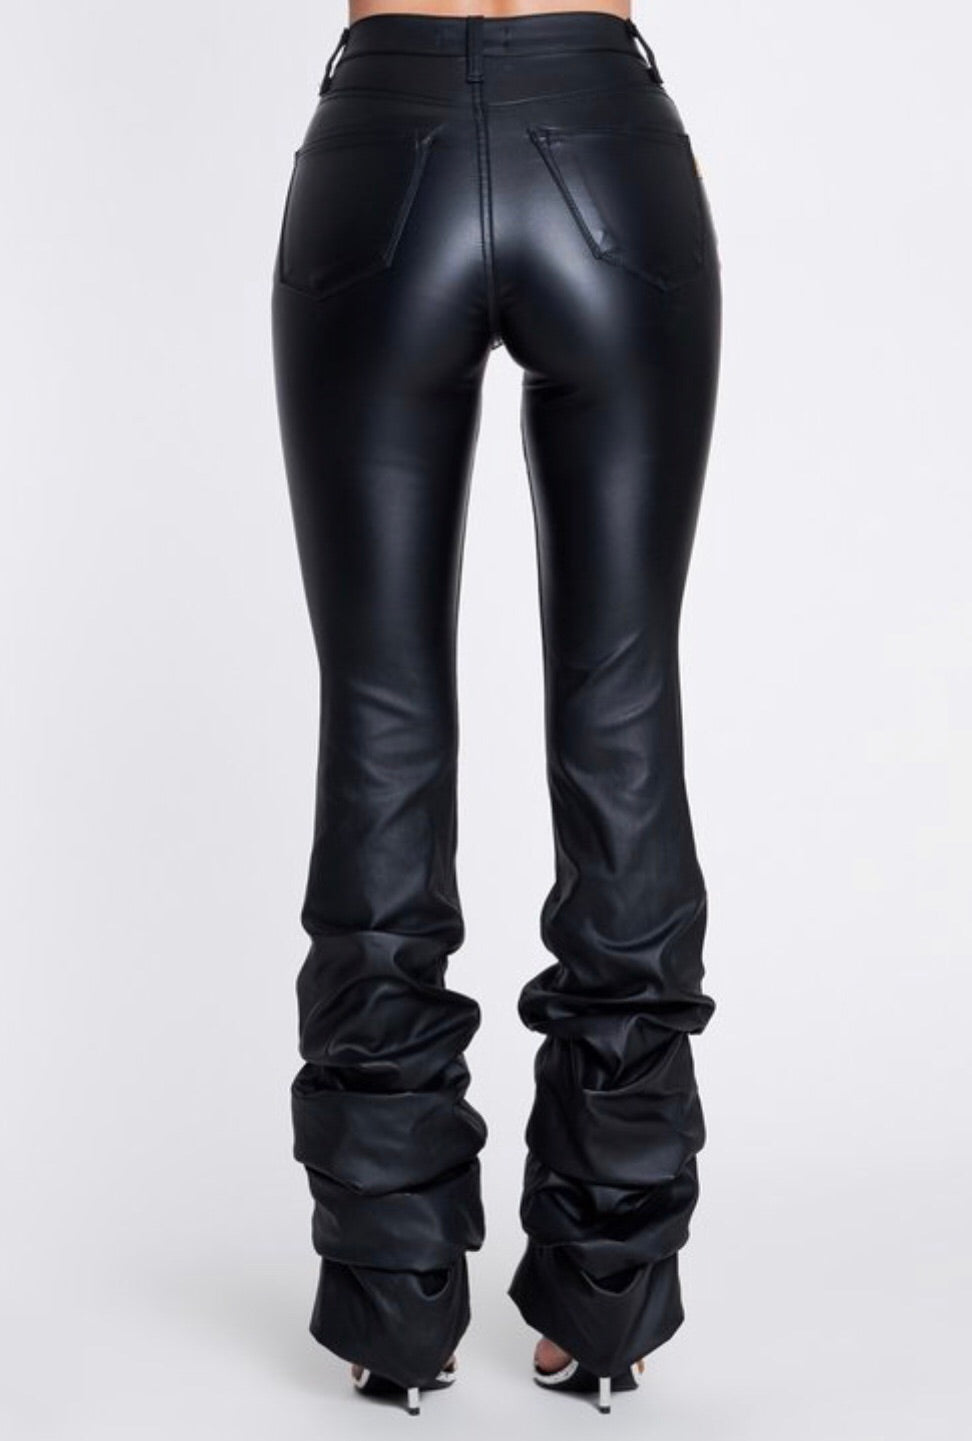 Show Off Vegan Leather Jeans